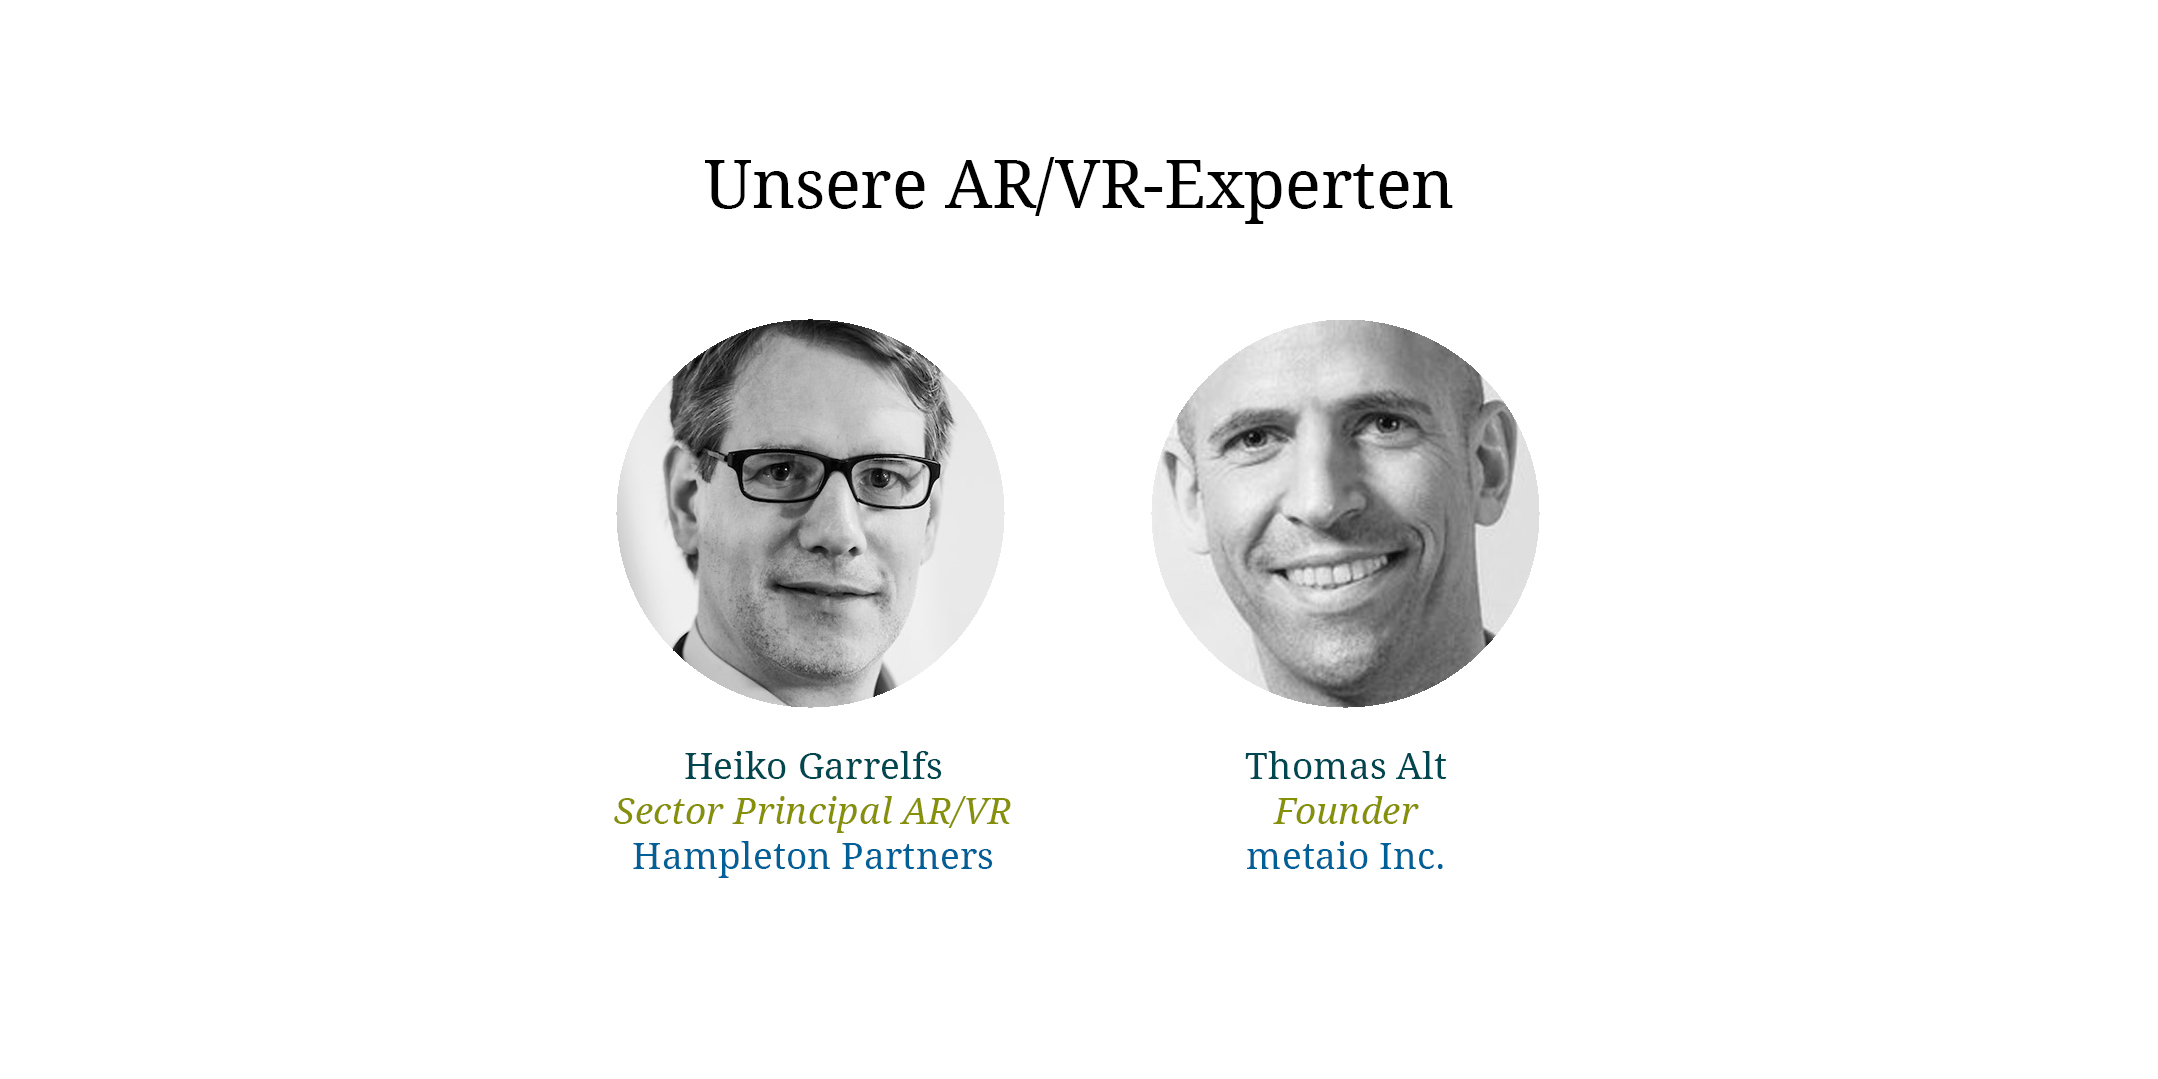 AR / VR Experts Heiko Garrelfs and Thomas Alt